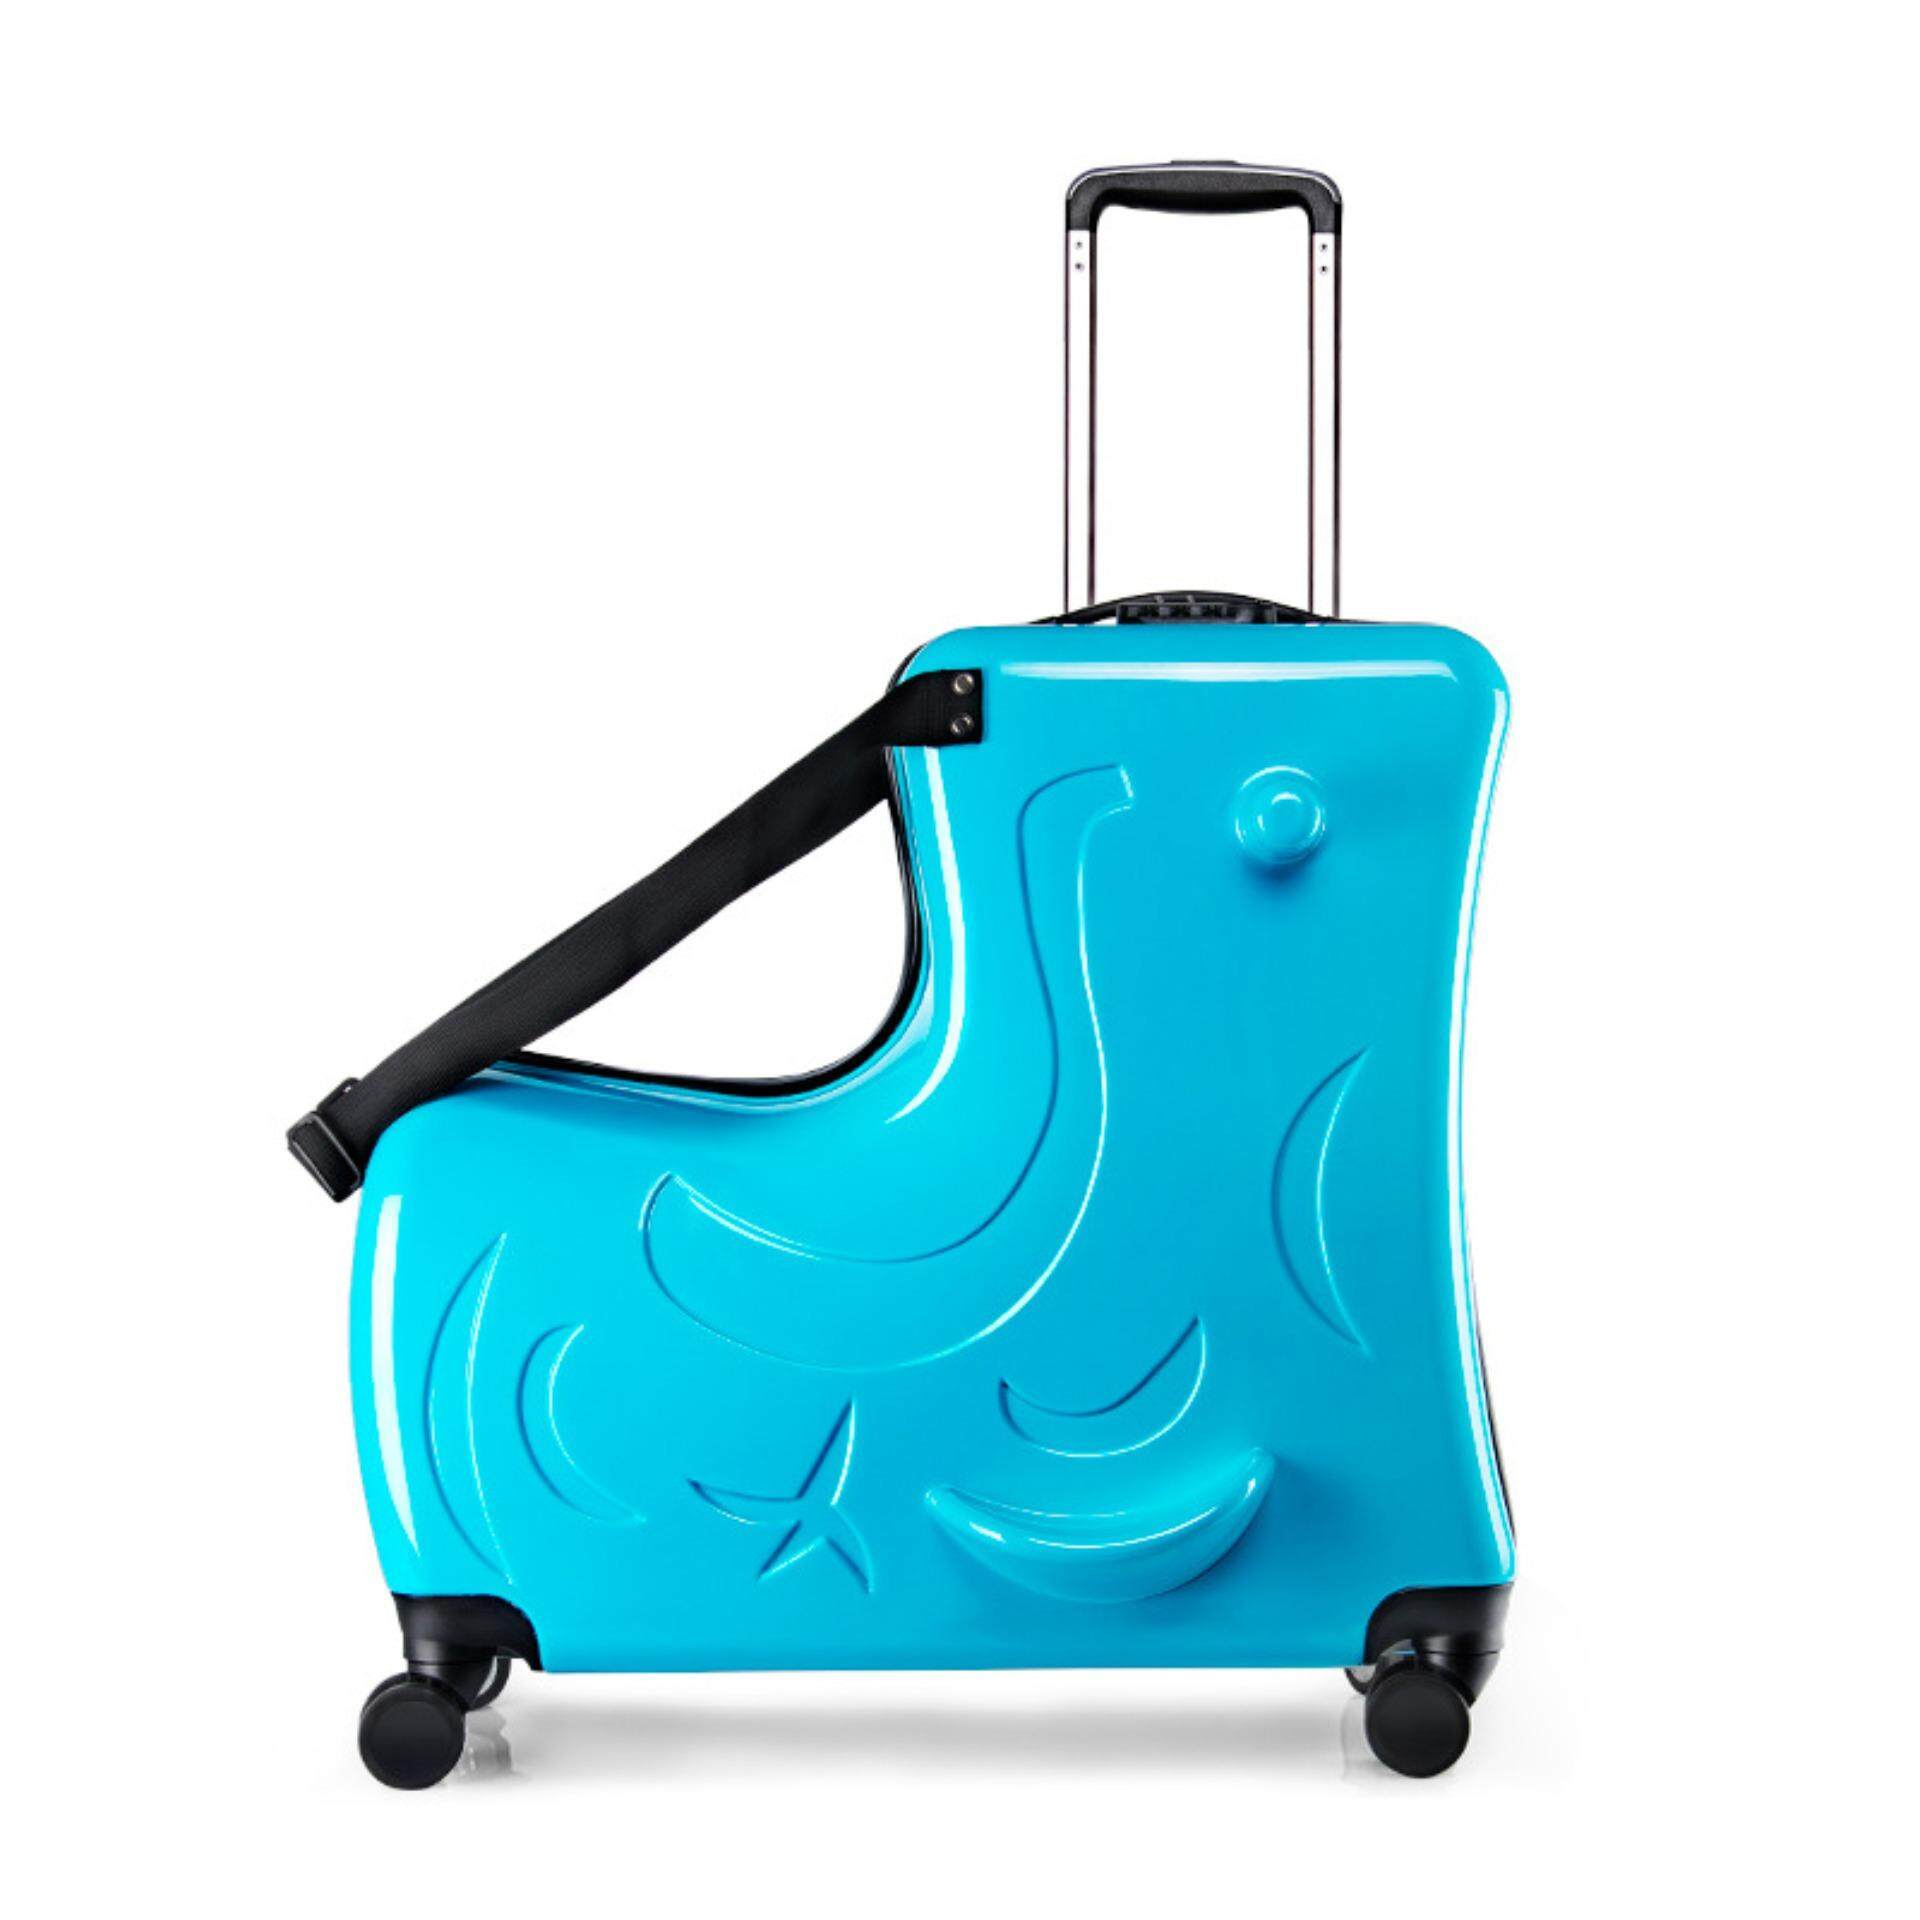 Luggage Buy Luggage At Best Price In Malaysia Www Lazada Com My